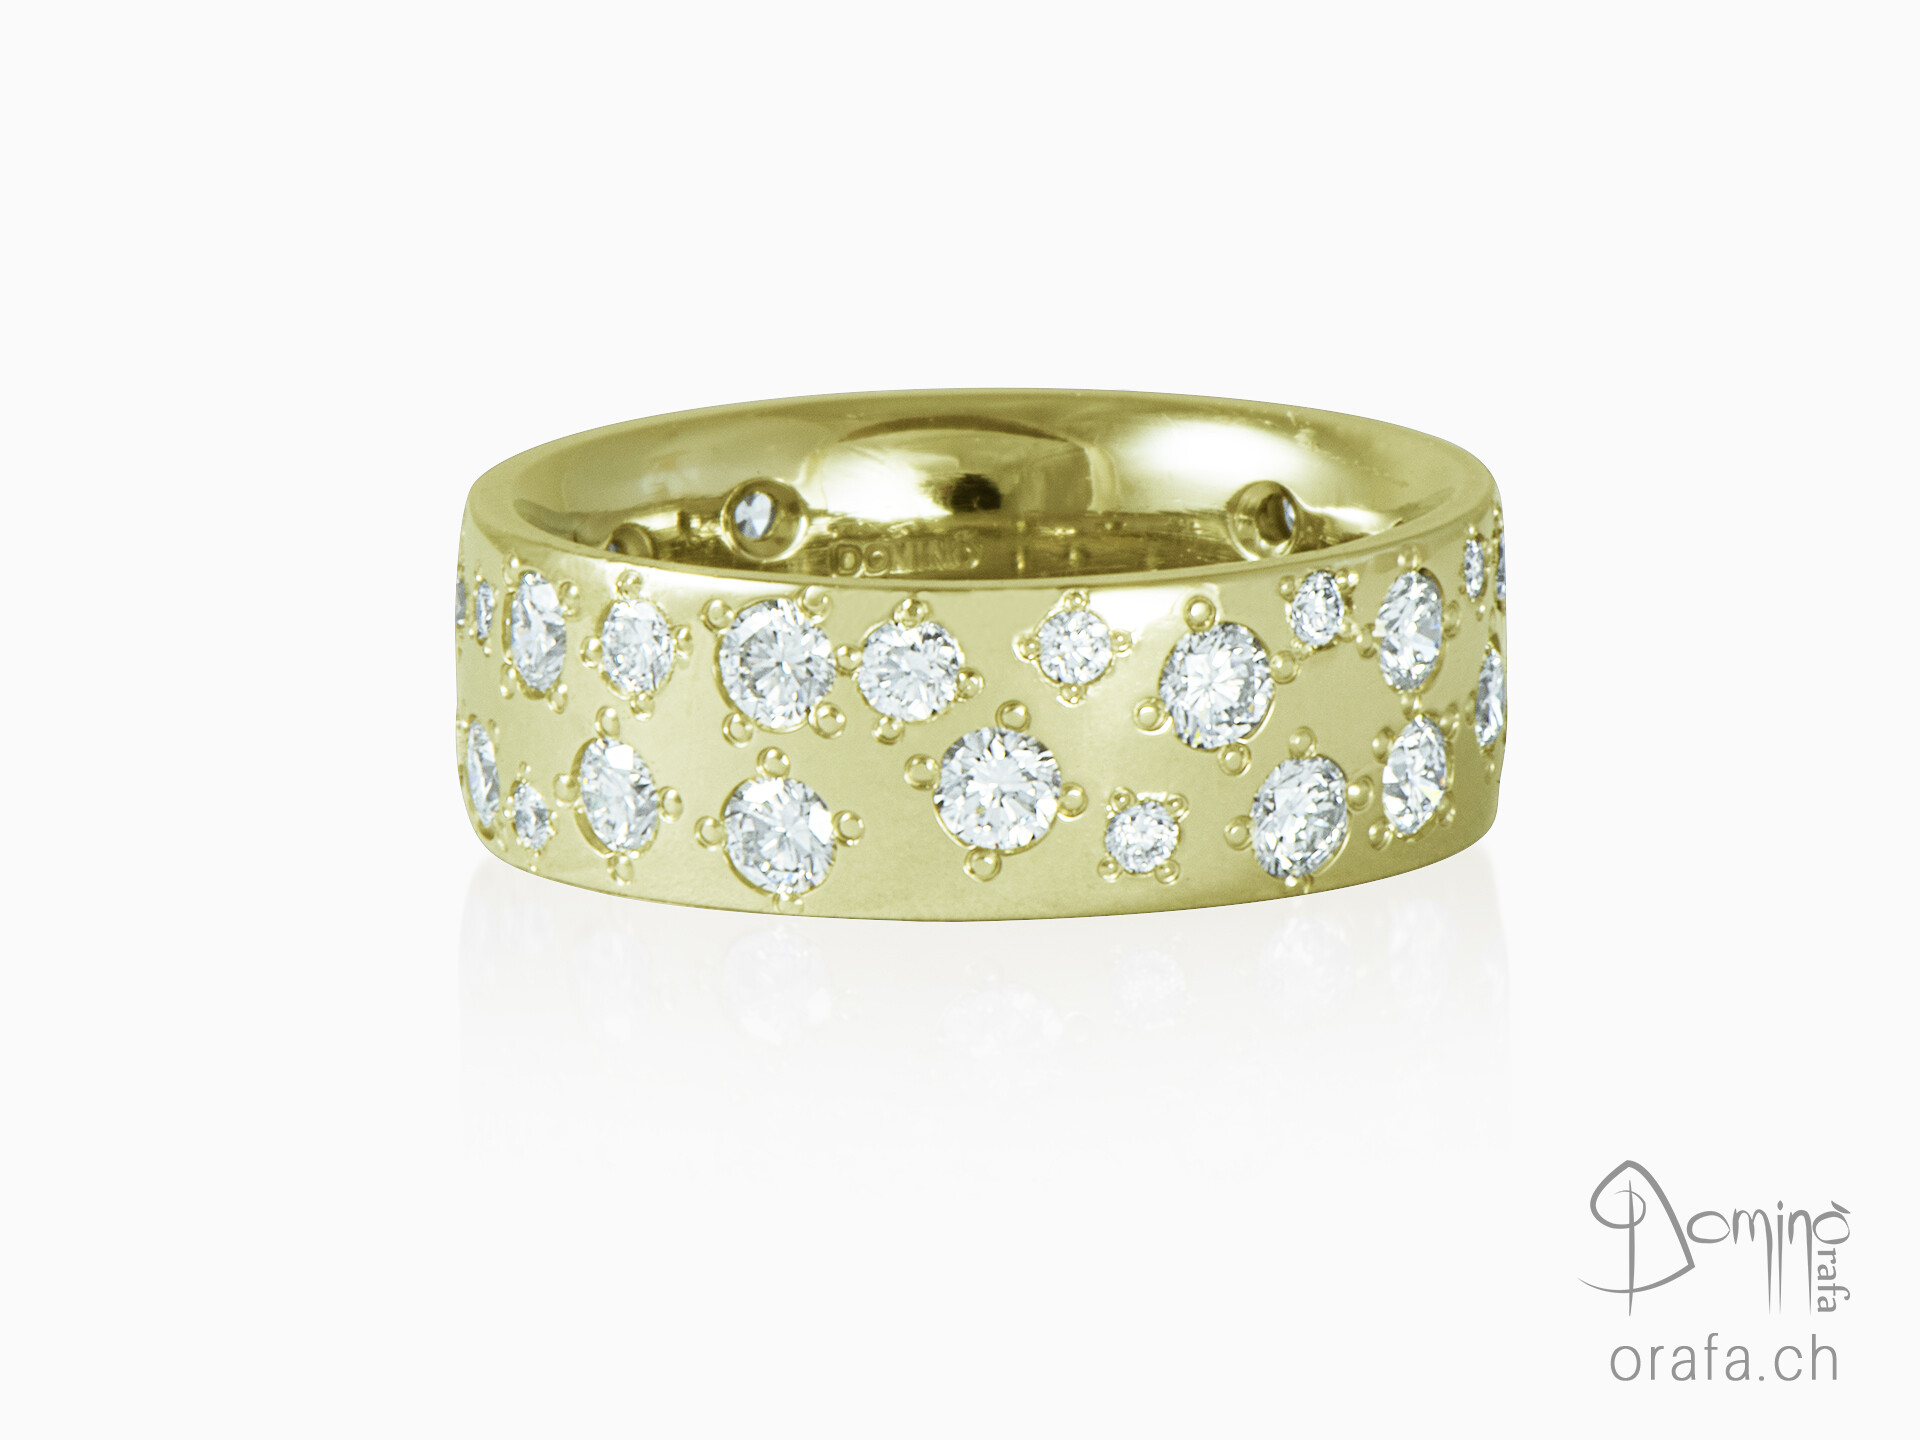 Rain of diamonds ring